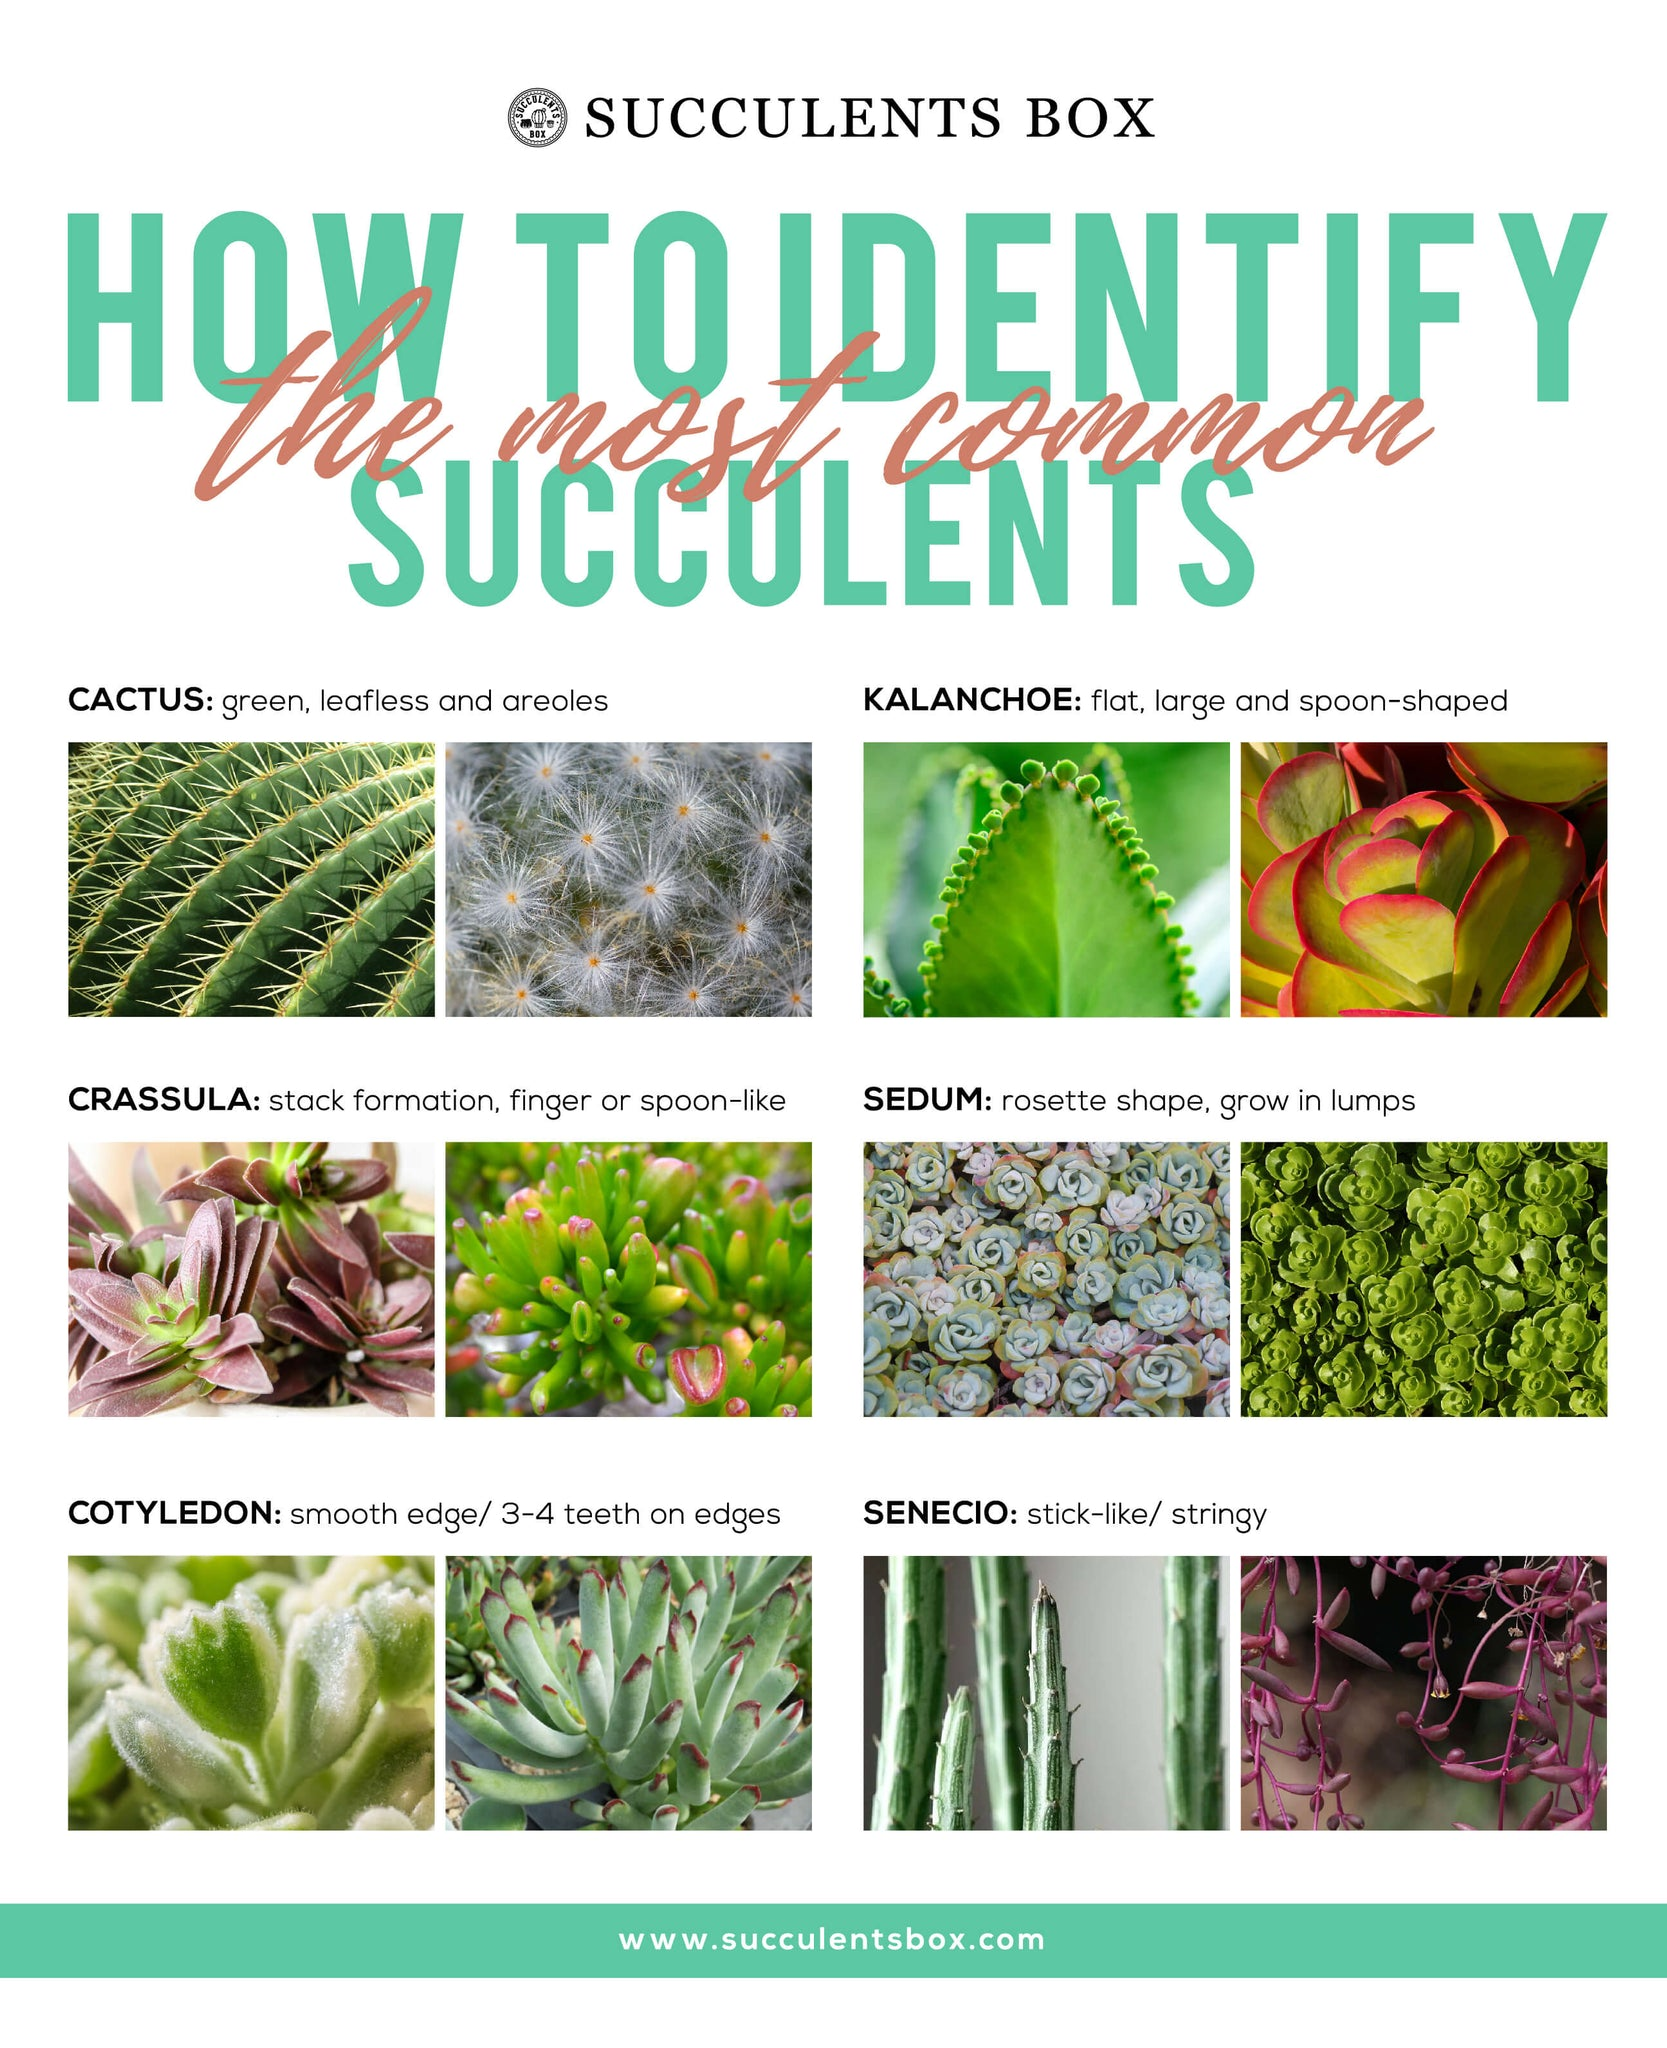 How to identify types of succulents